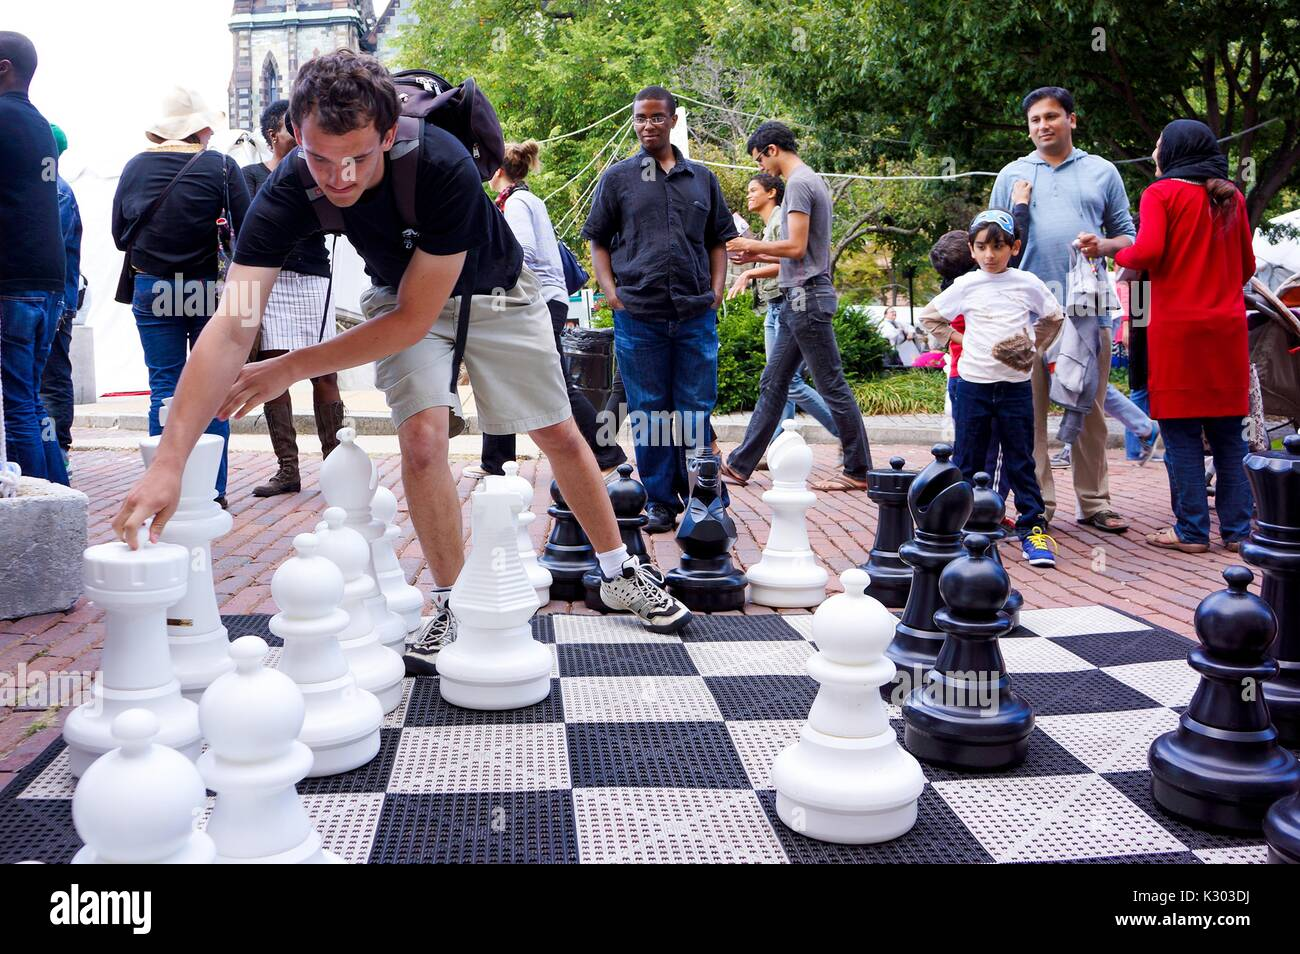 A man wearing a backpack reaches to move the king piece from a life-sized chess set, while onlookers behind him observe his strategy, during Baltimore Book Festival, Baltimore, Maryland, September, 2013. Courtesy Eric Chen. - Stock Image